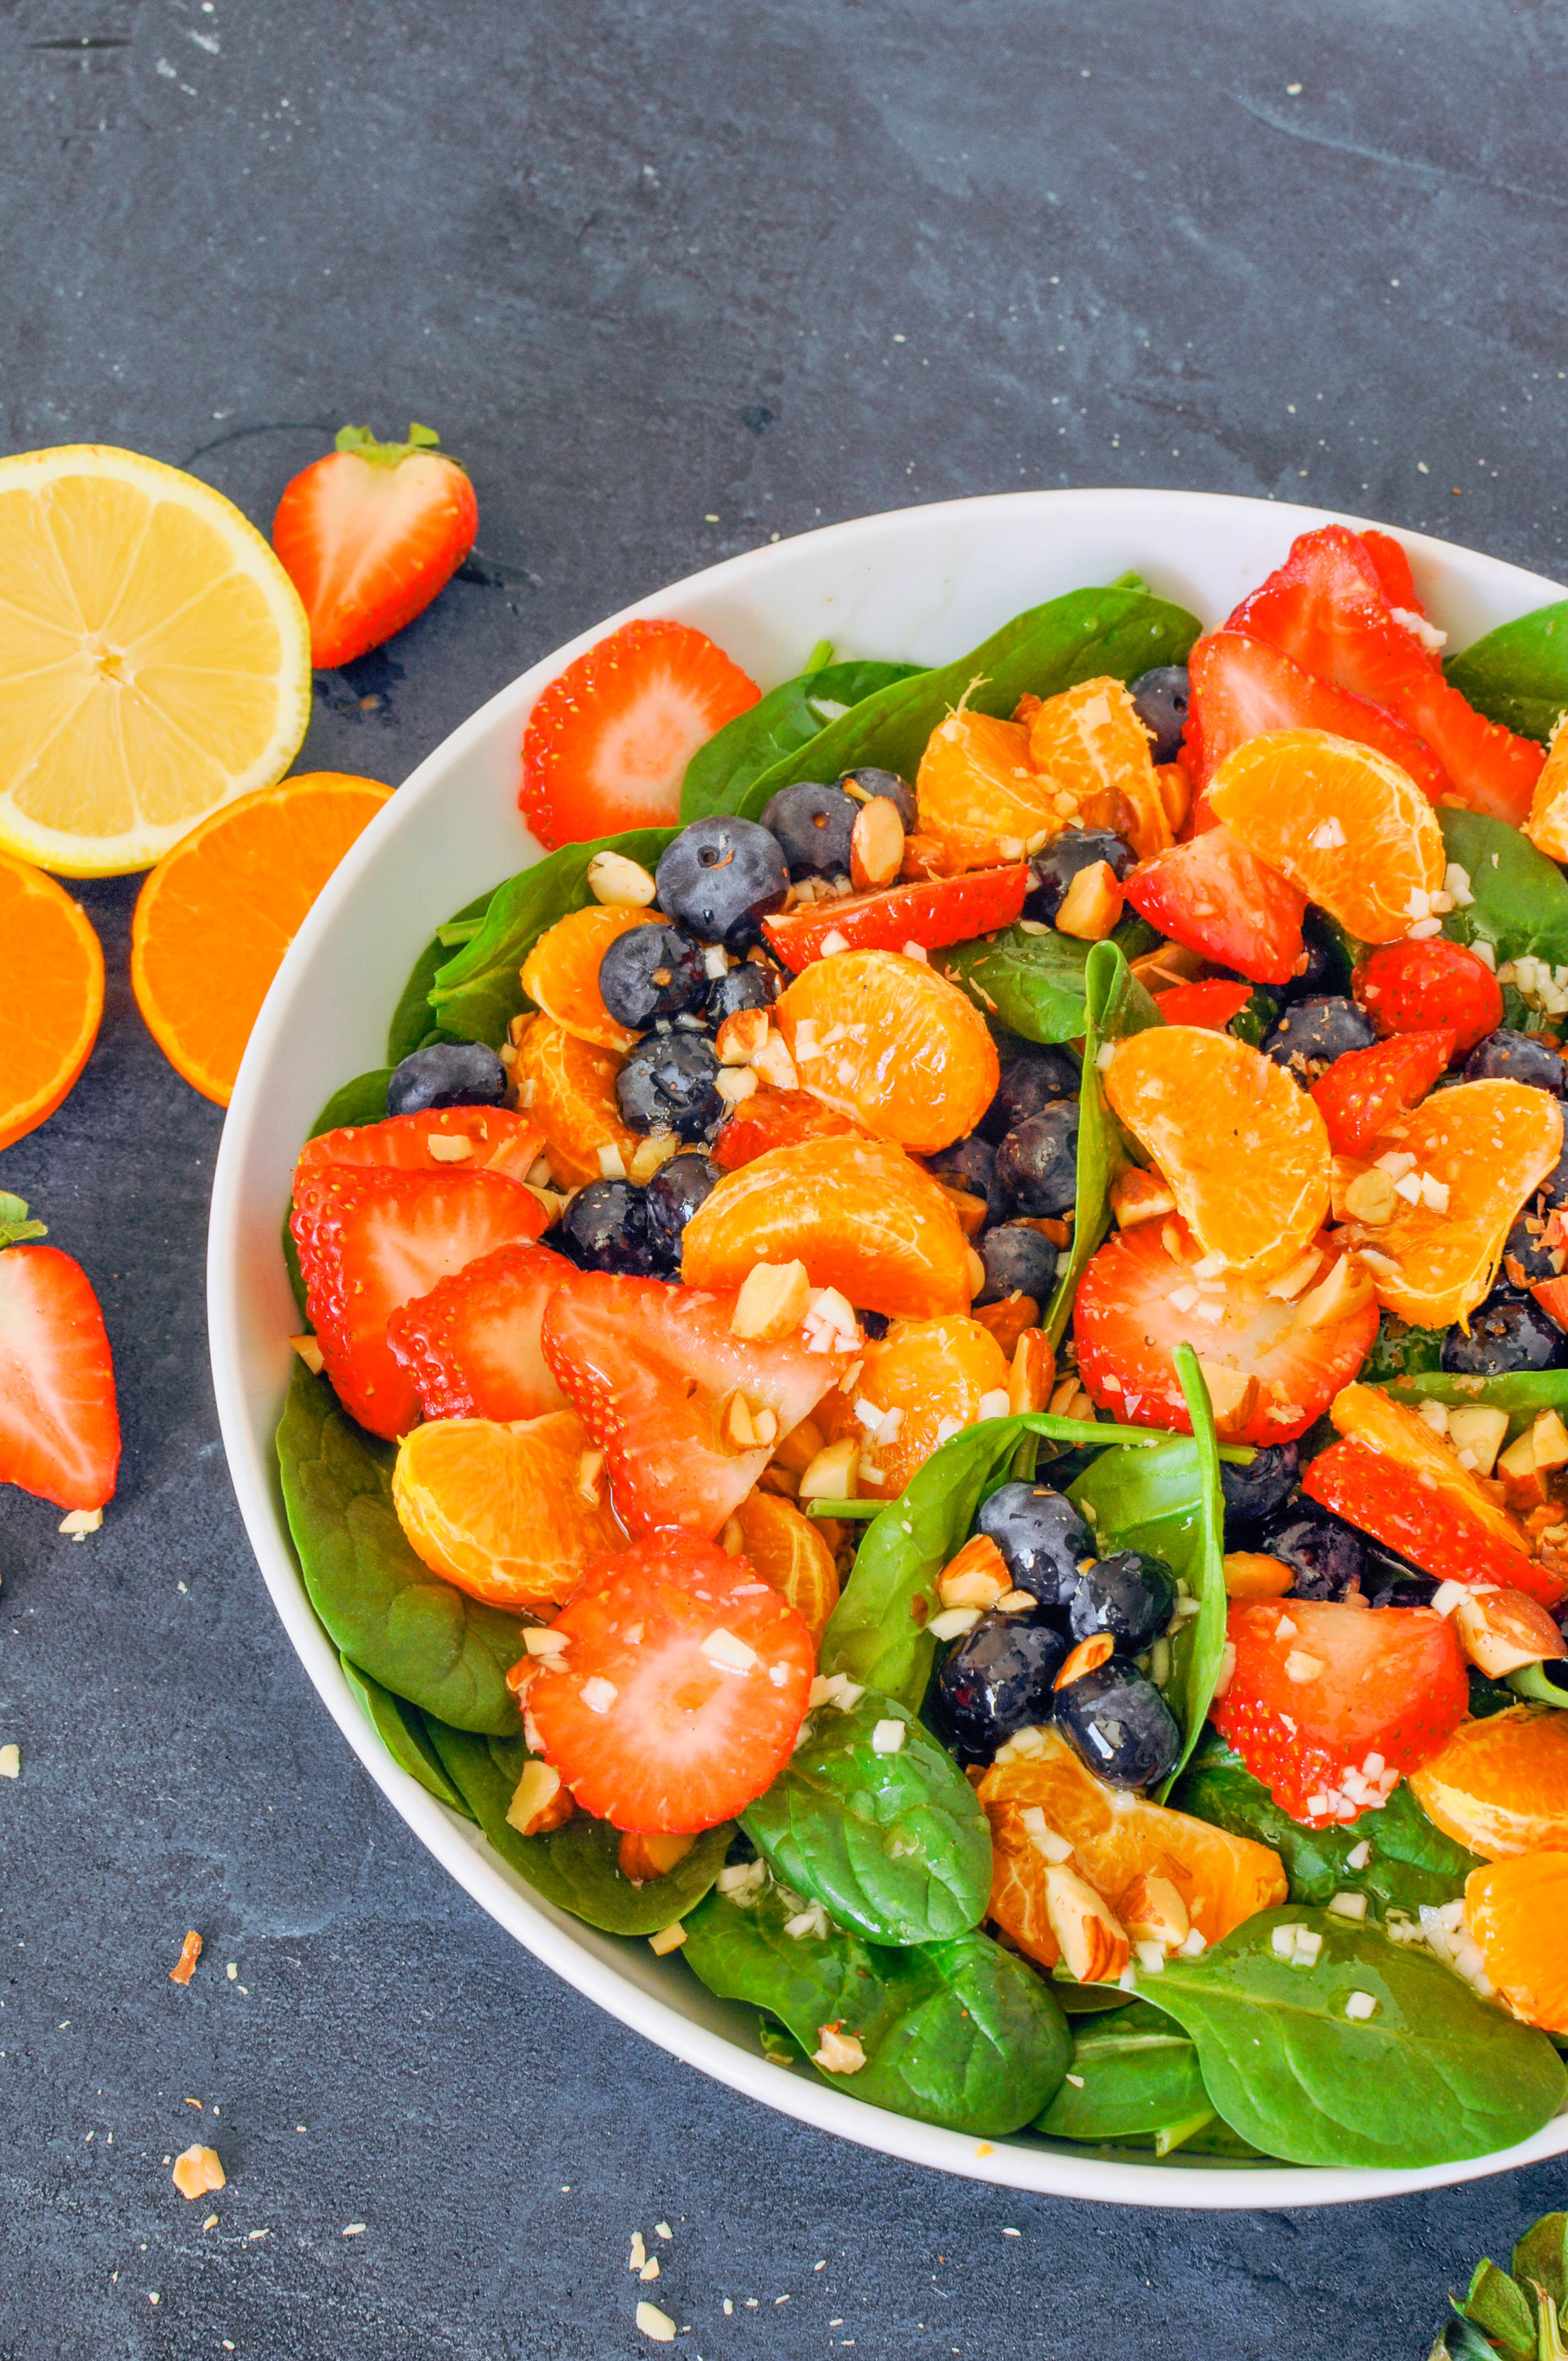 This energy boosting salad with citrus, berries, and spinach is easy, refreshing, and bright. (vegan and gluten-free)